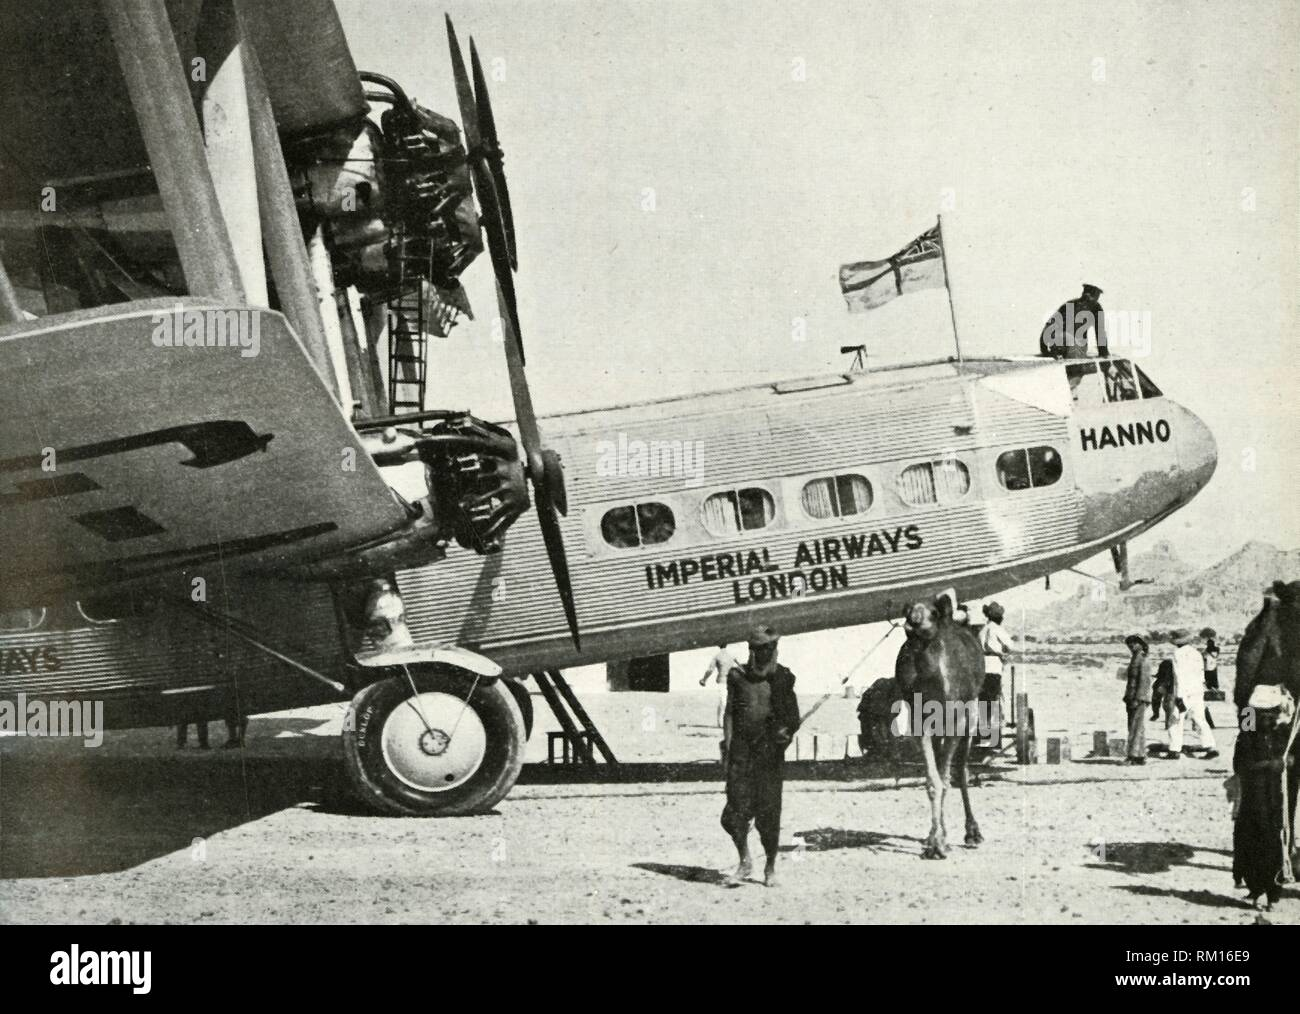 "Imperial Airways Handley-Page HP 42 biplane 'Hanno', Gwadar, Baluchistan, c1931-c1940 (1946). 'By 1929, Imperial Airways Ltd. had pushed their regular weekly service from Great Britain to India. The leisurely four-engined biplane 'Hanno' was typical of the land-based passenger aircraft of those days. She is at Gwadar, Baluchistan. From ""Merchant Airmen - The Air Ministry Account of British Civil Aviation, 1939-1944"". [His Majesty's Stationery Office, London, 1946]. Stock Photo"